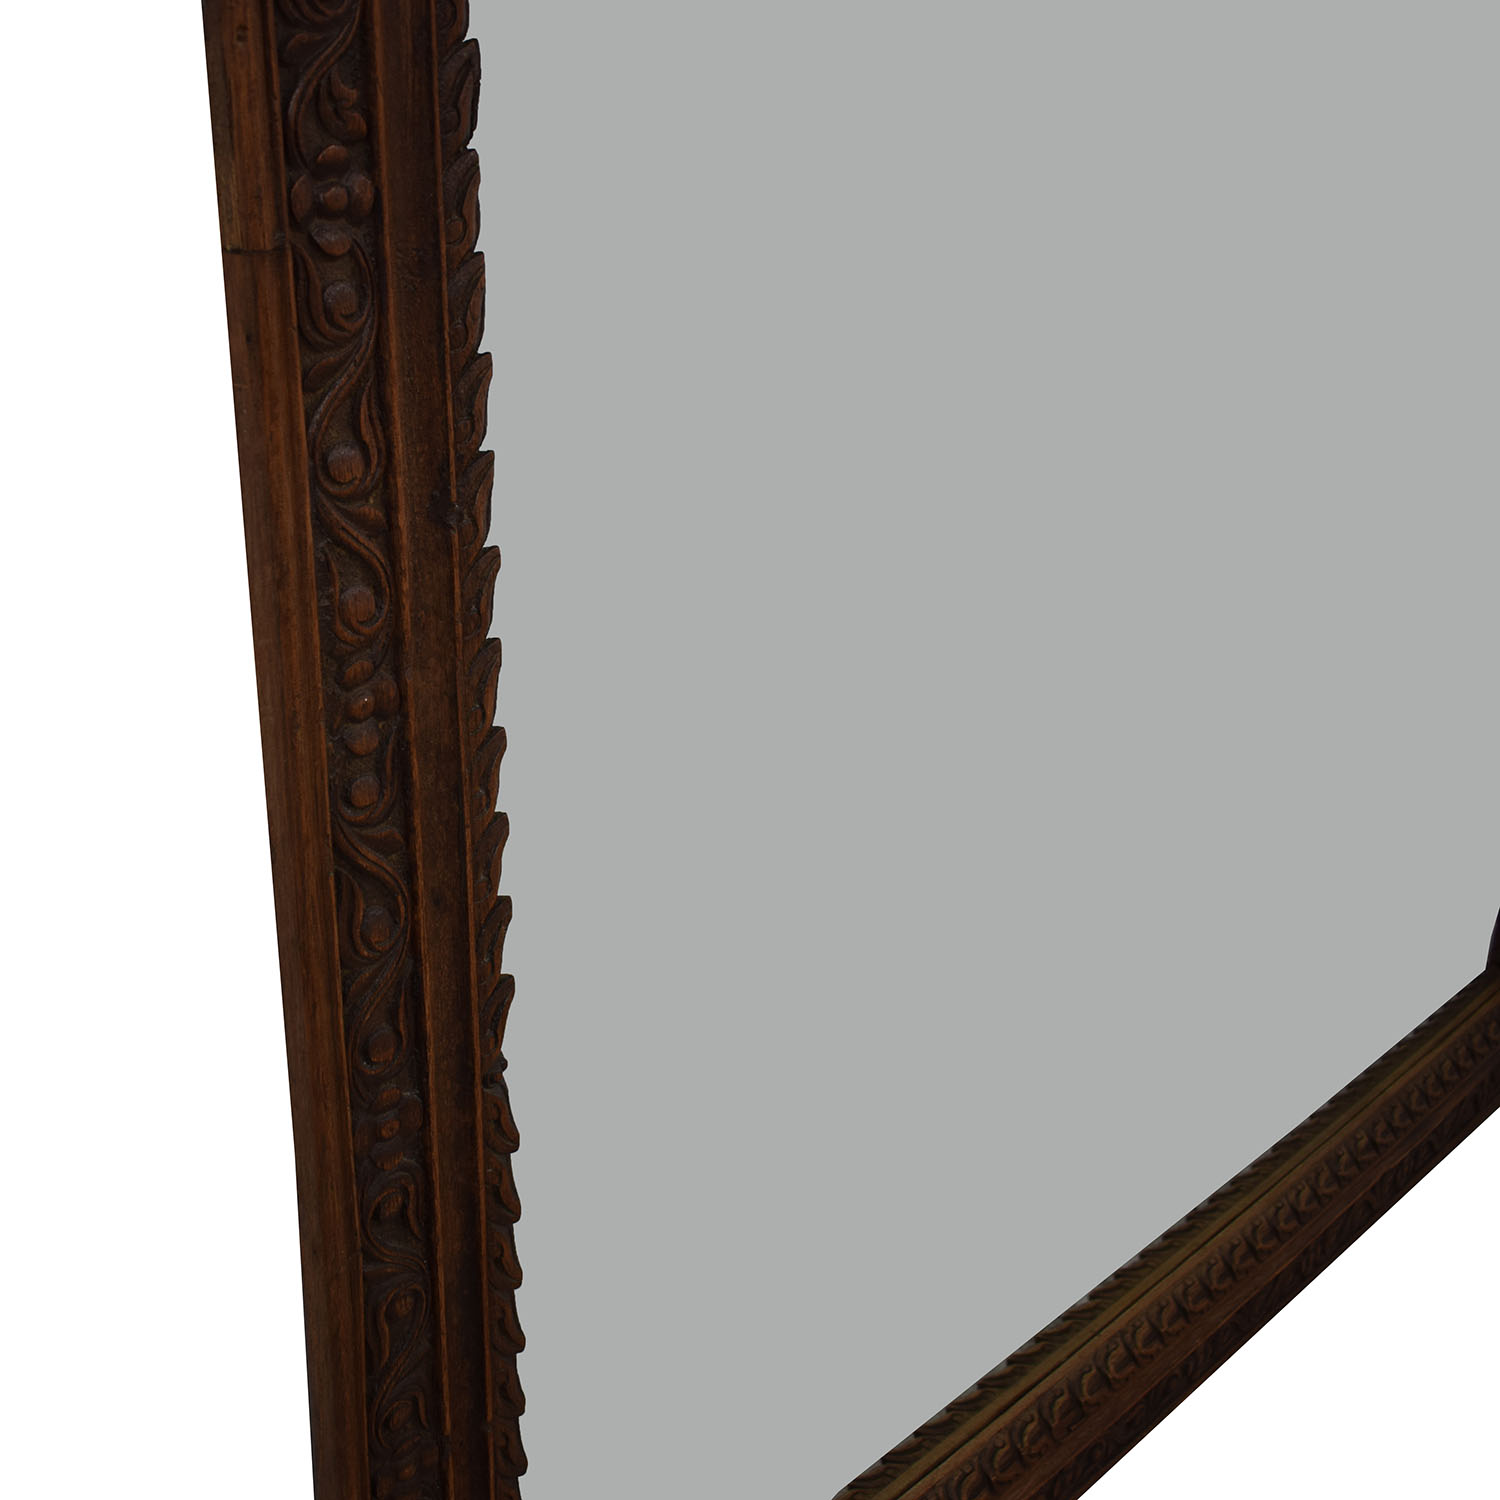 Large Carved Wood Mirror dimensions